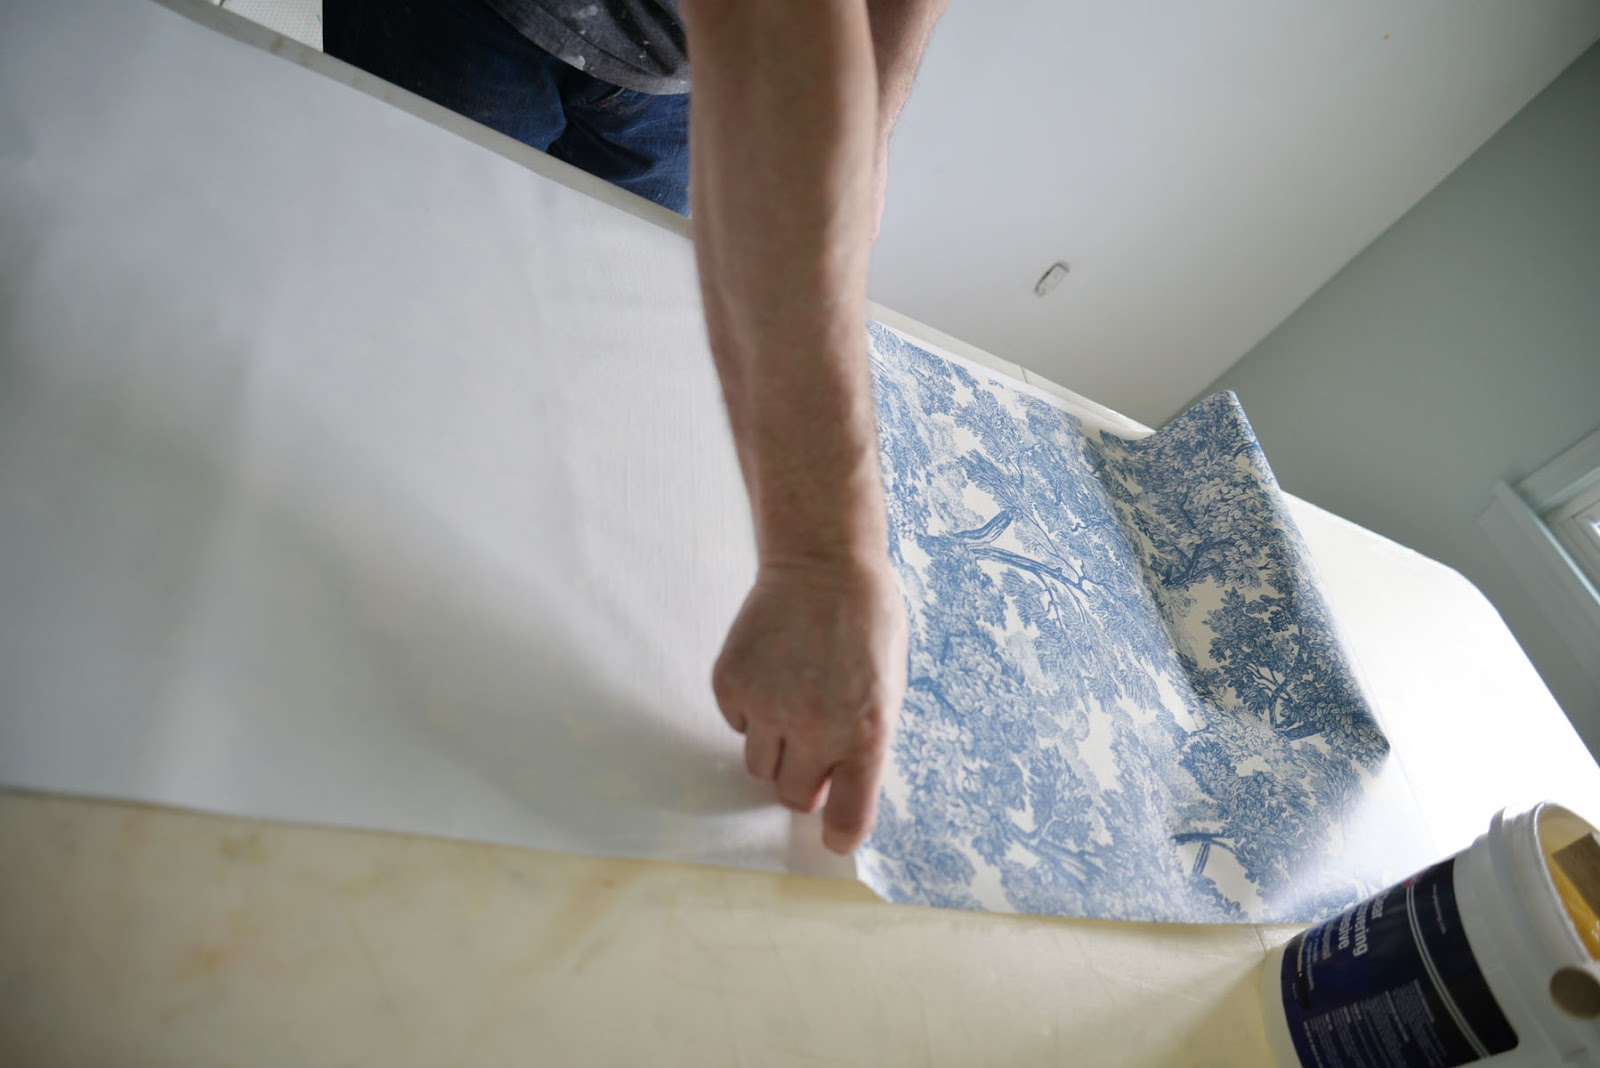 wallpaper booking | ramblingrenovators.ca